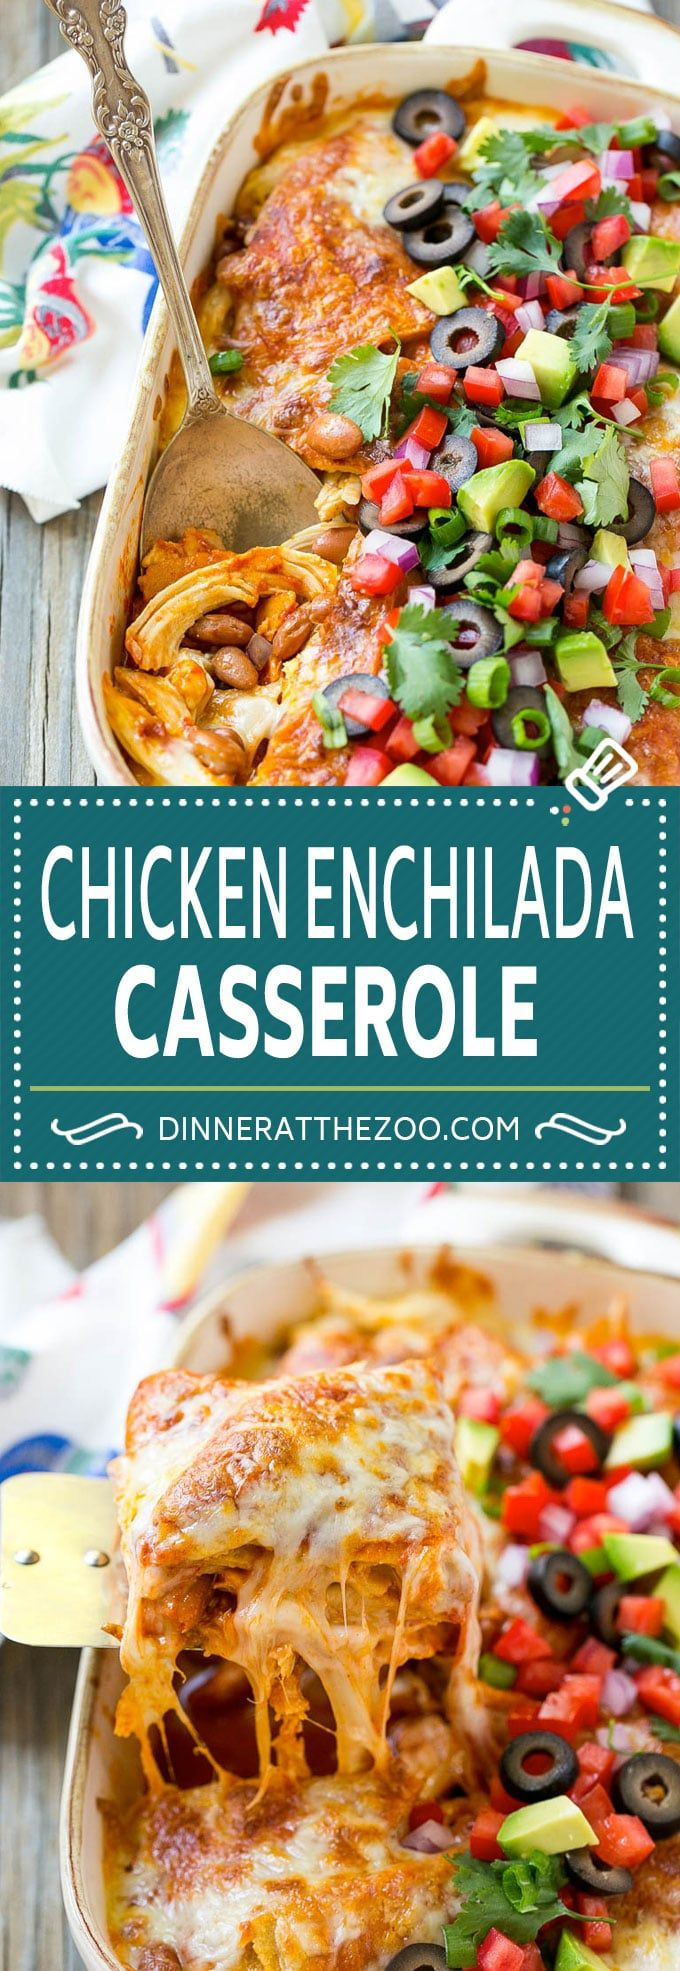 Chicken Enchilada Casserole Recipe | Mexican Casserole | Chicken Enchiladas